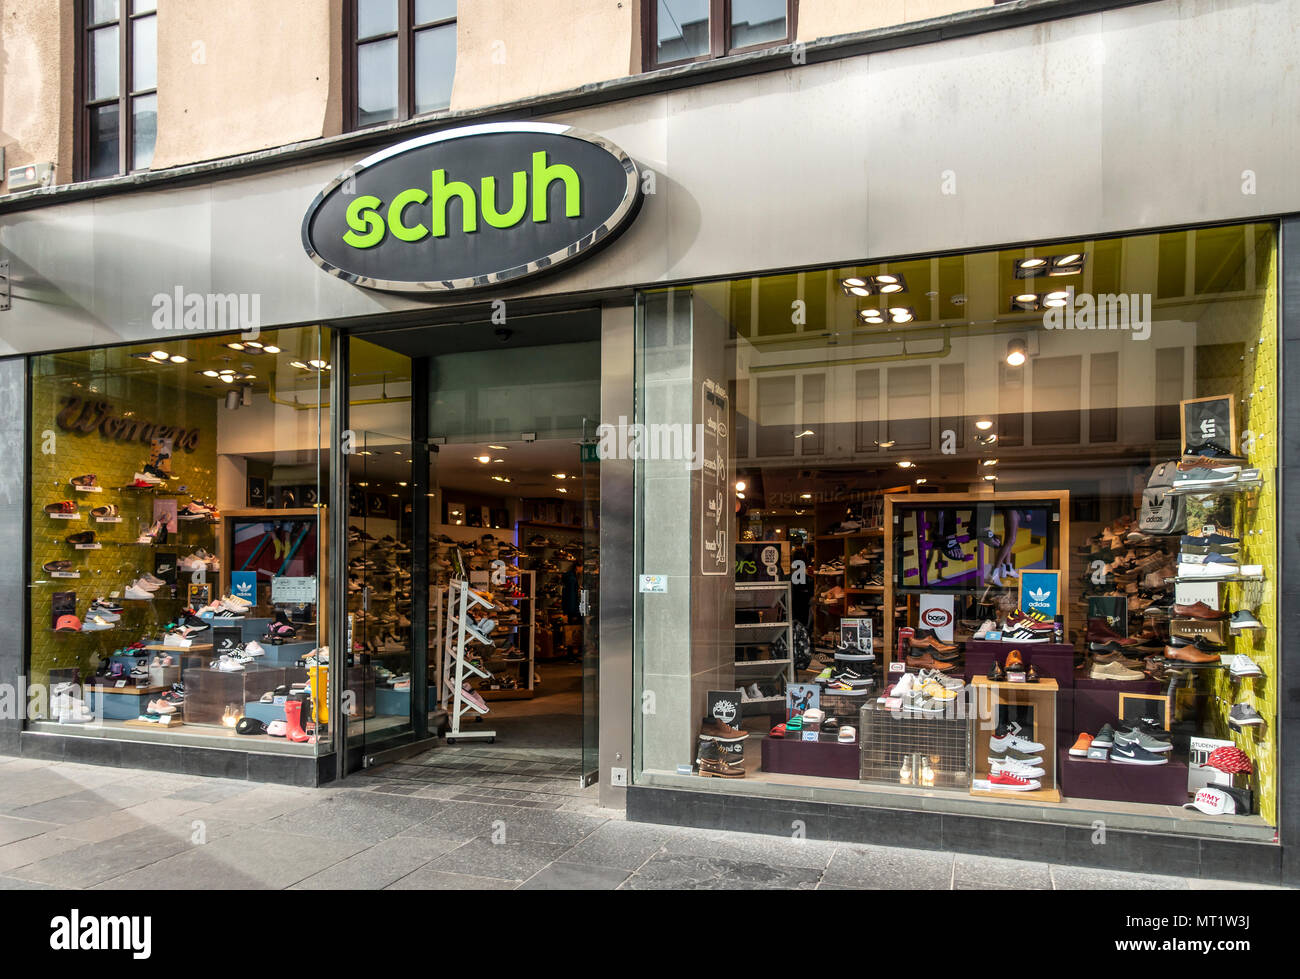 948986d400ab Shop front and open entrance door to the schuh retail show shop in Argyle  Street